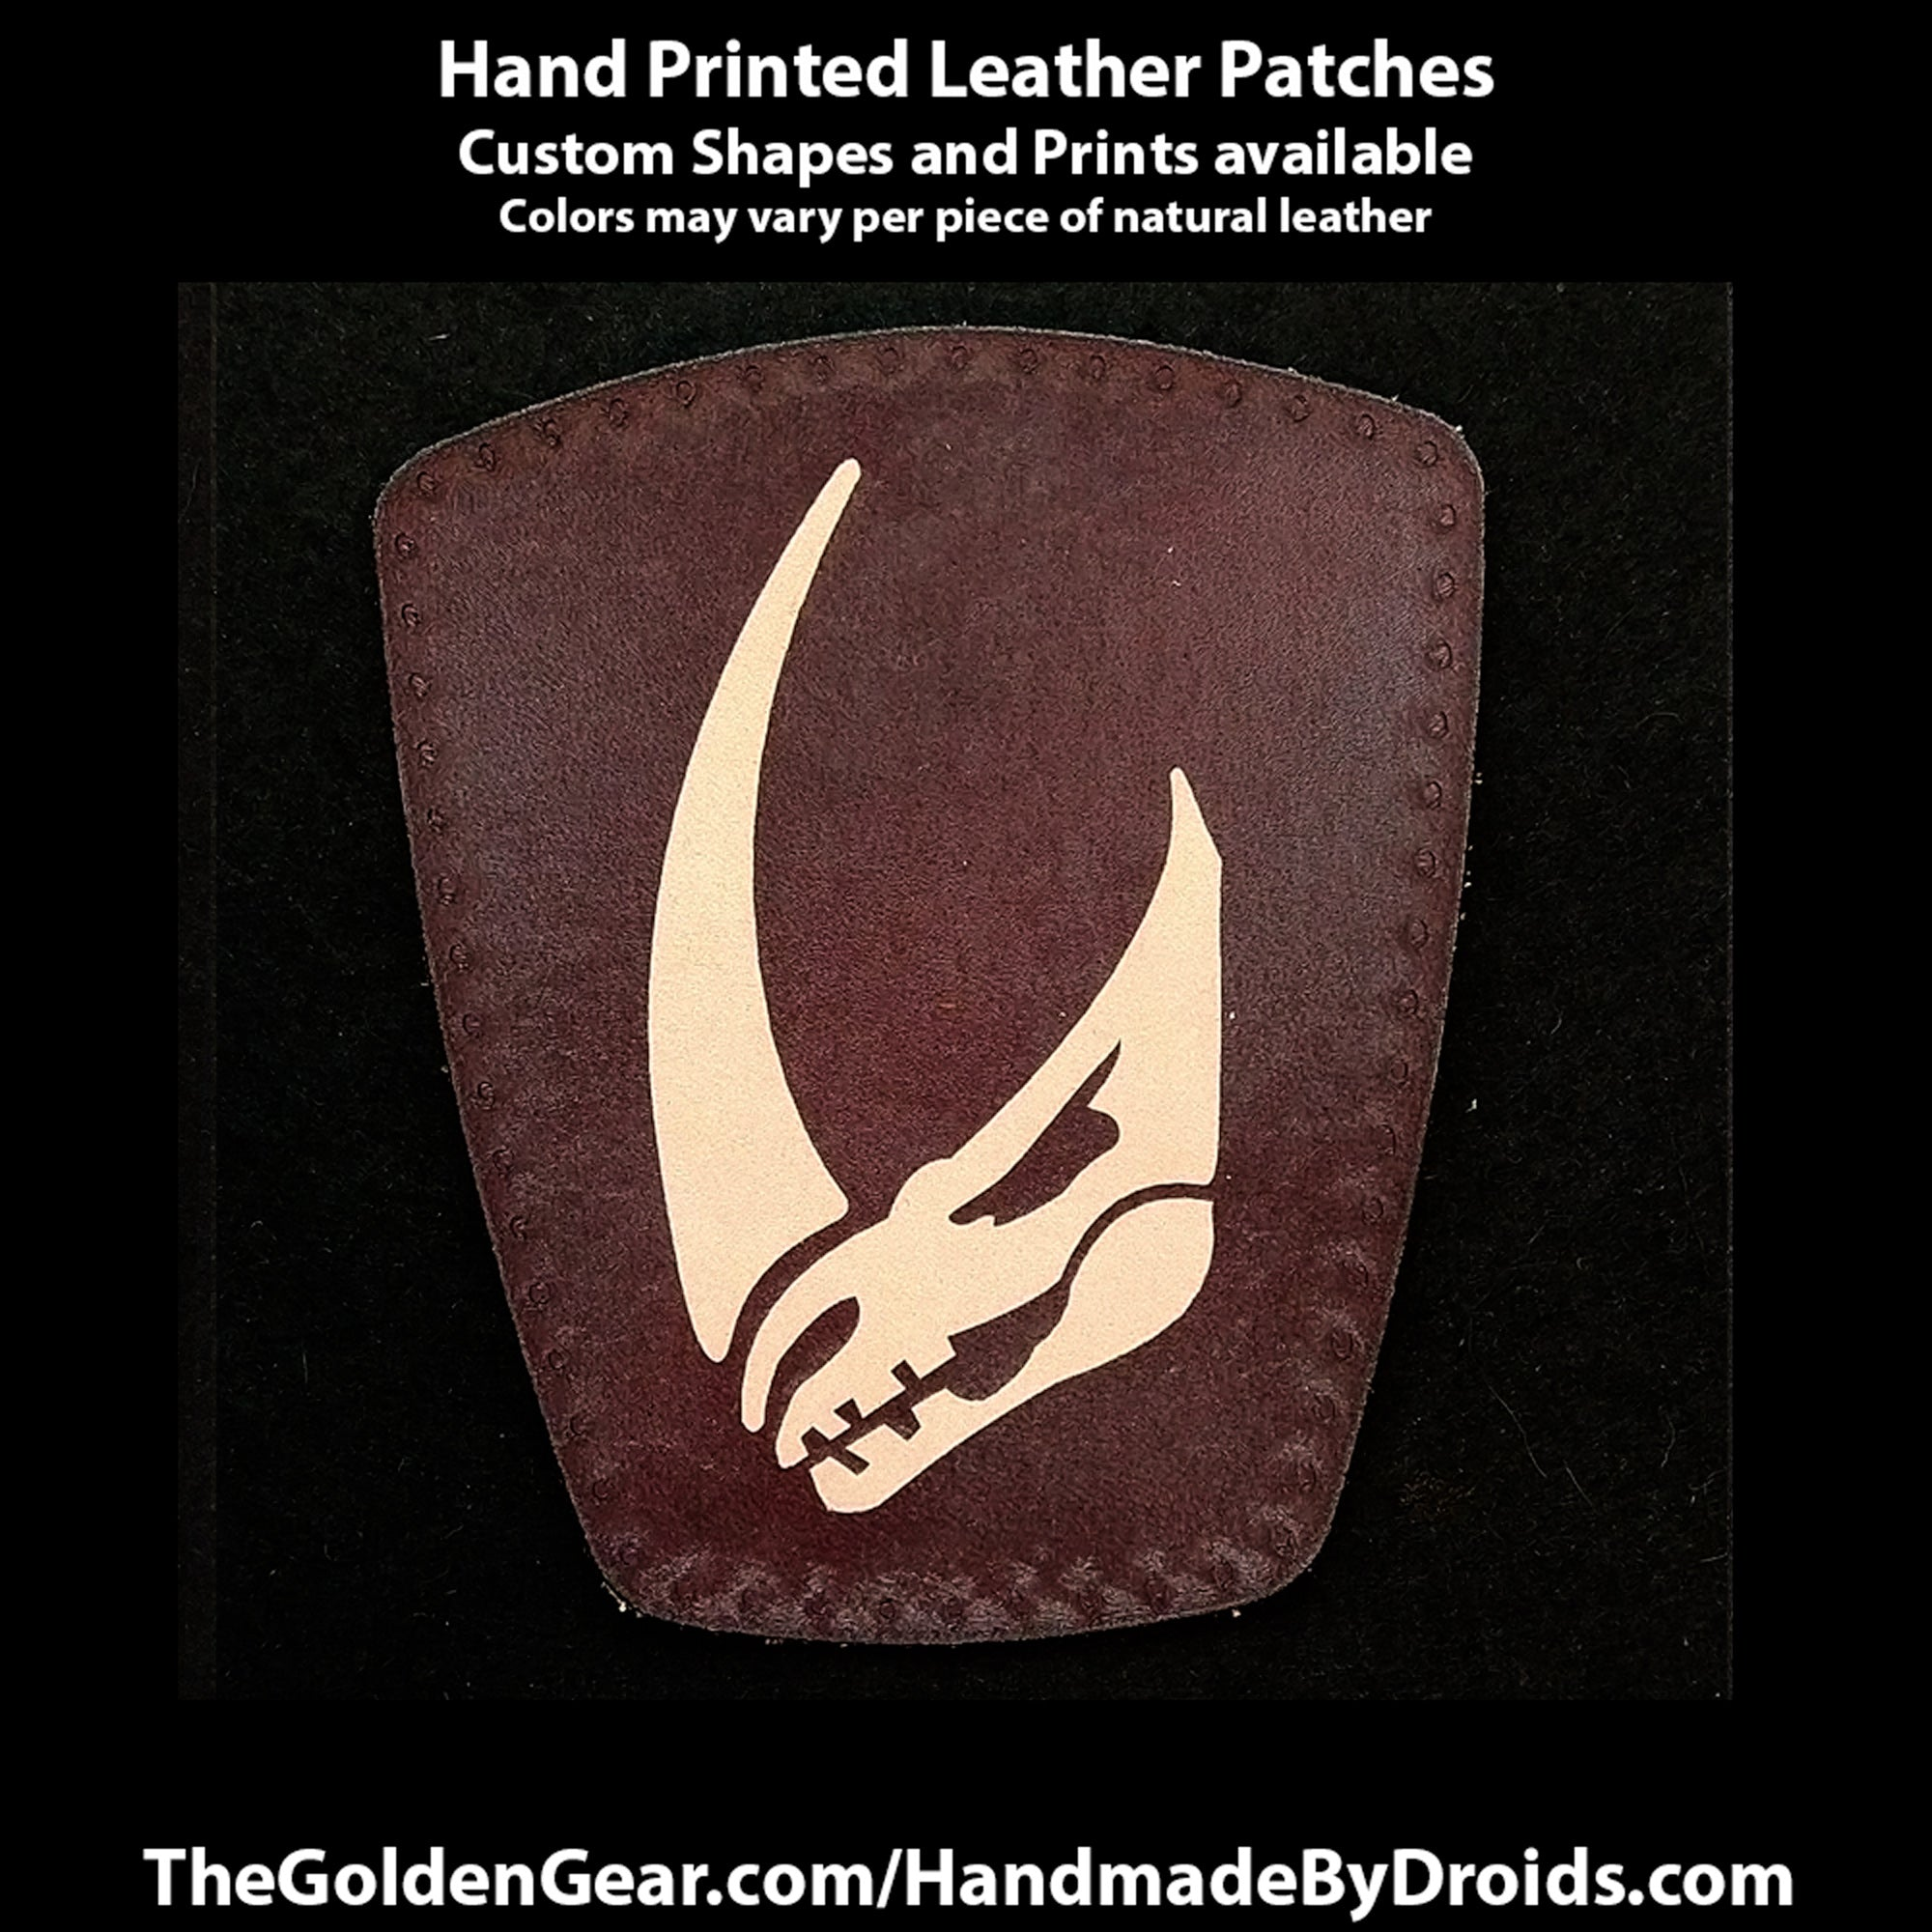 Mudhorn Signet (Star Wars) 4 inch Leather Patch